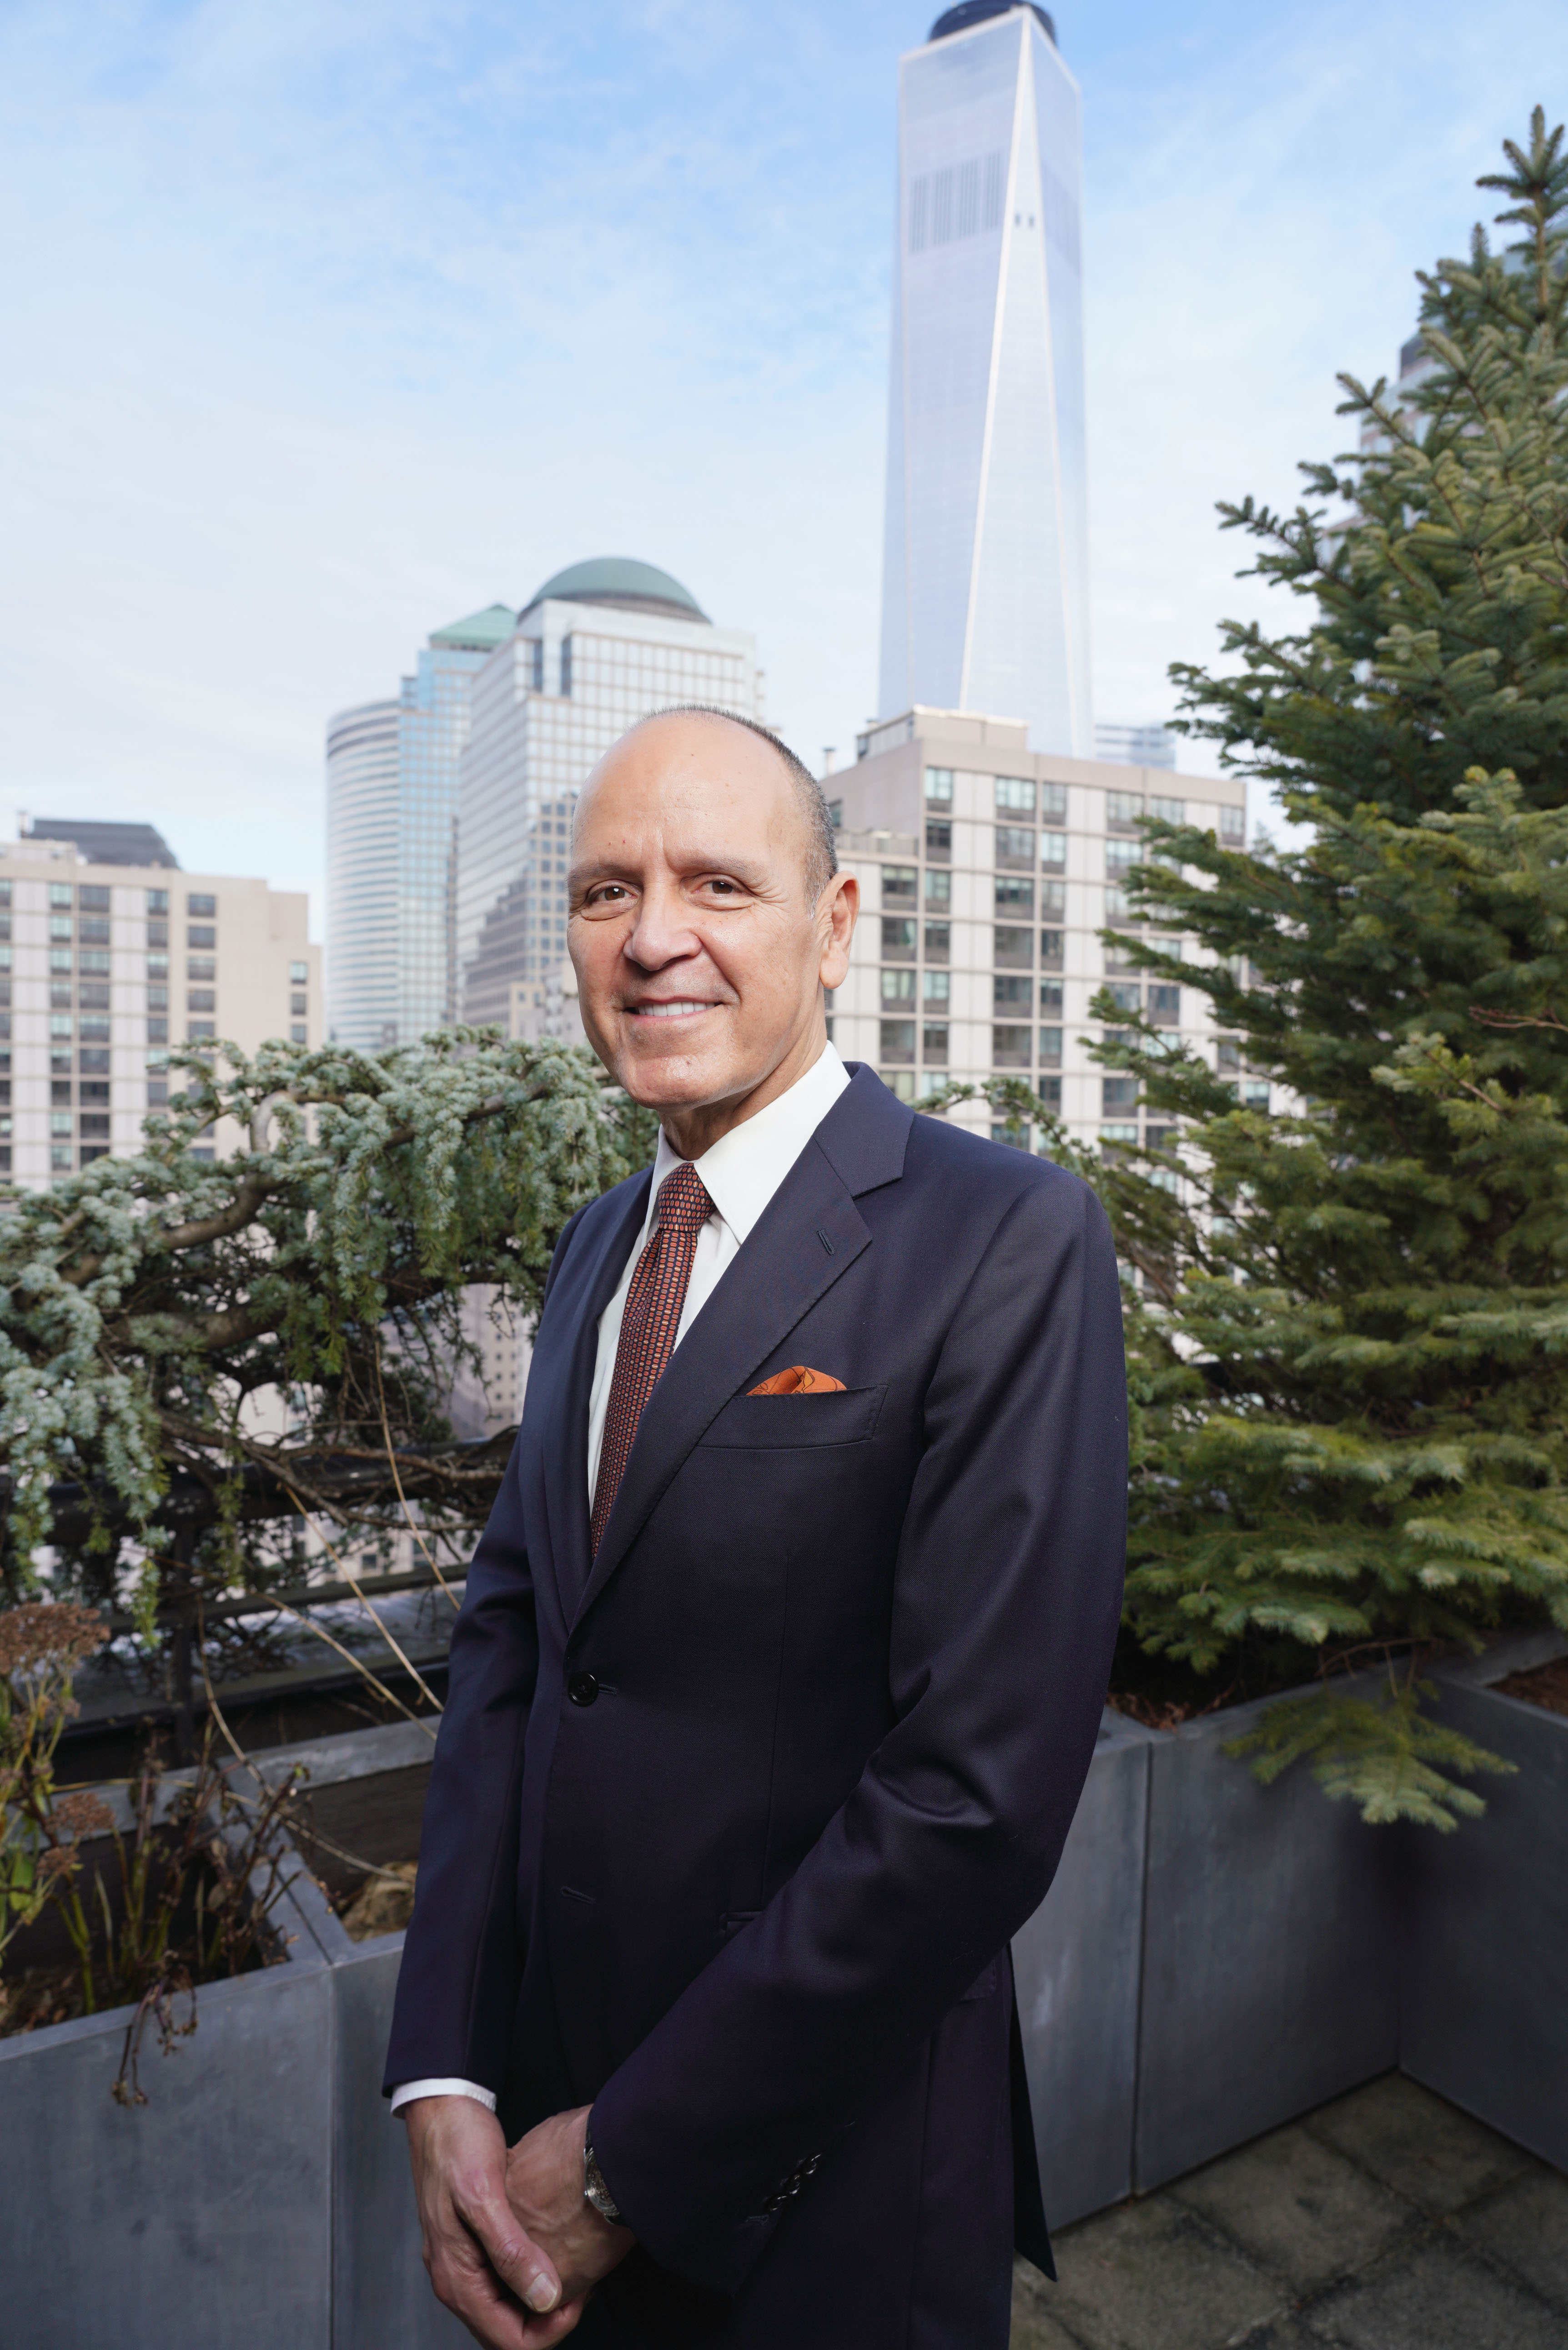 Robert Chavez, ceo of Herms Americas, taking in a majestic view of Lower Manhattan.